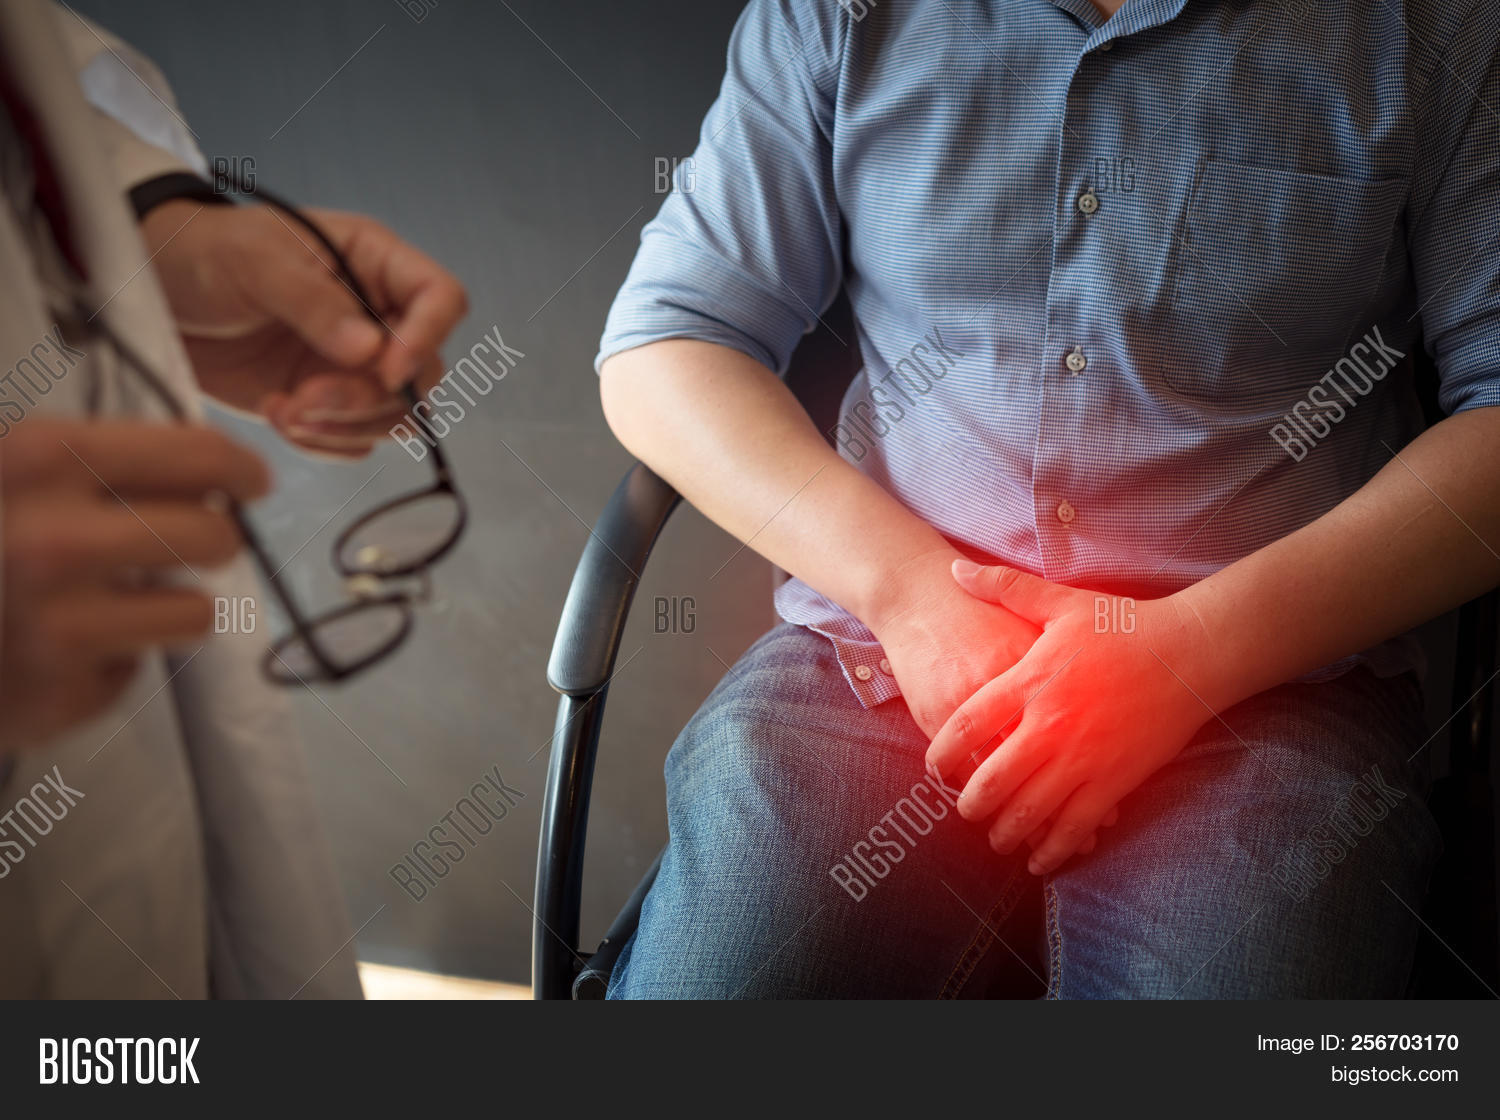 Male Doctor And Testicular Cancer Patient Are Discussing About Testicular Cancer Test Report. Testic